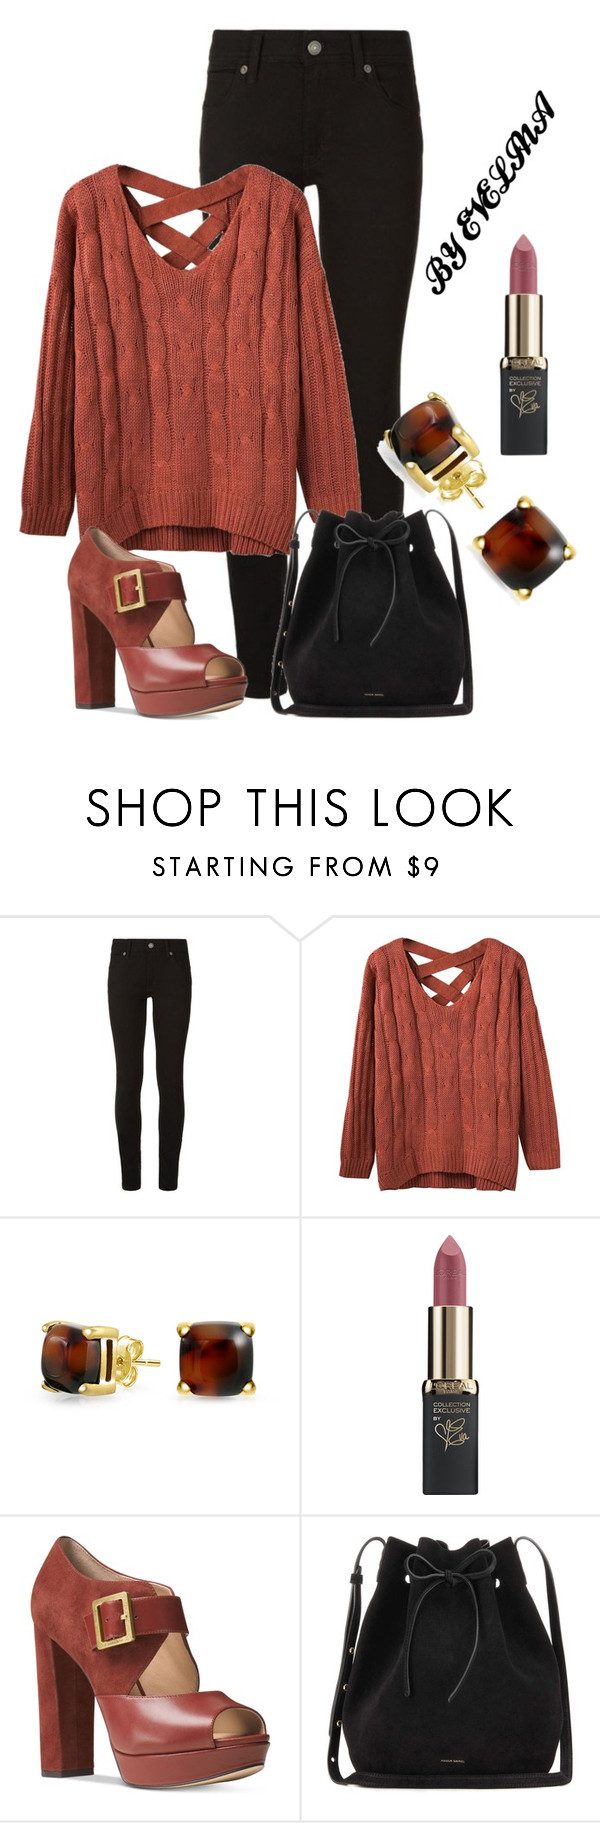 """""""EVE"""" by evelina-er ❤ liked on Polyvore featuring Burberry, Bling Jewelry, L'Oréal Paris, Michael Kors and Mansur Gavriel"""